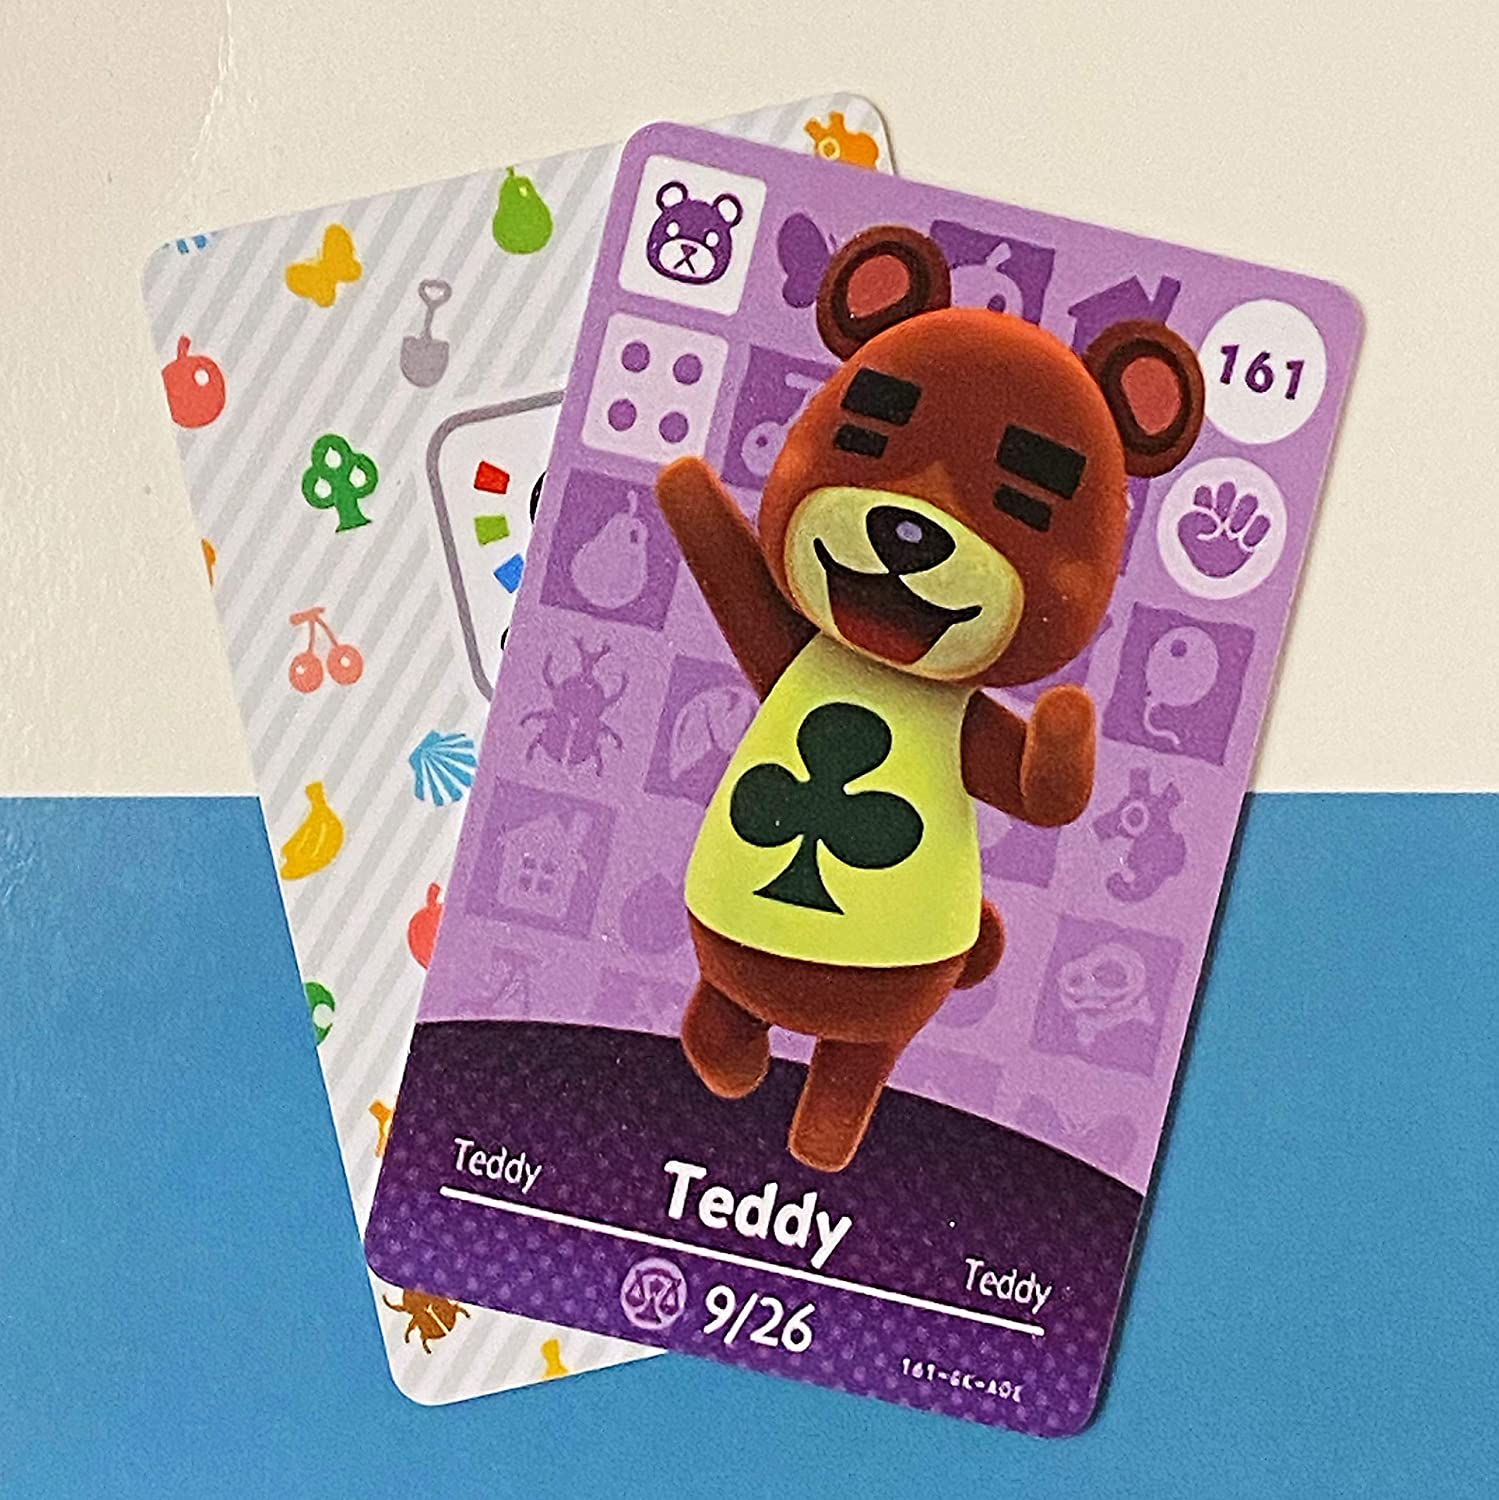 No.161 Teddy ACNH Animal Houston Translated Mall Villager Party NFC Fan Card Made.Third